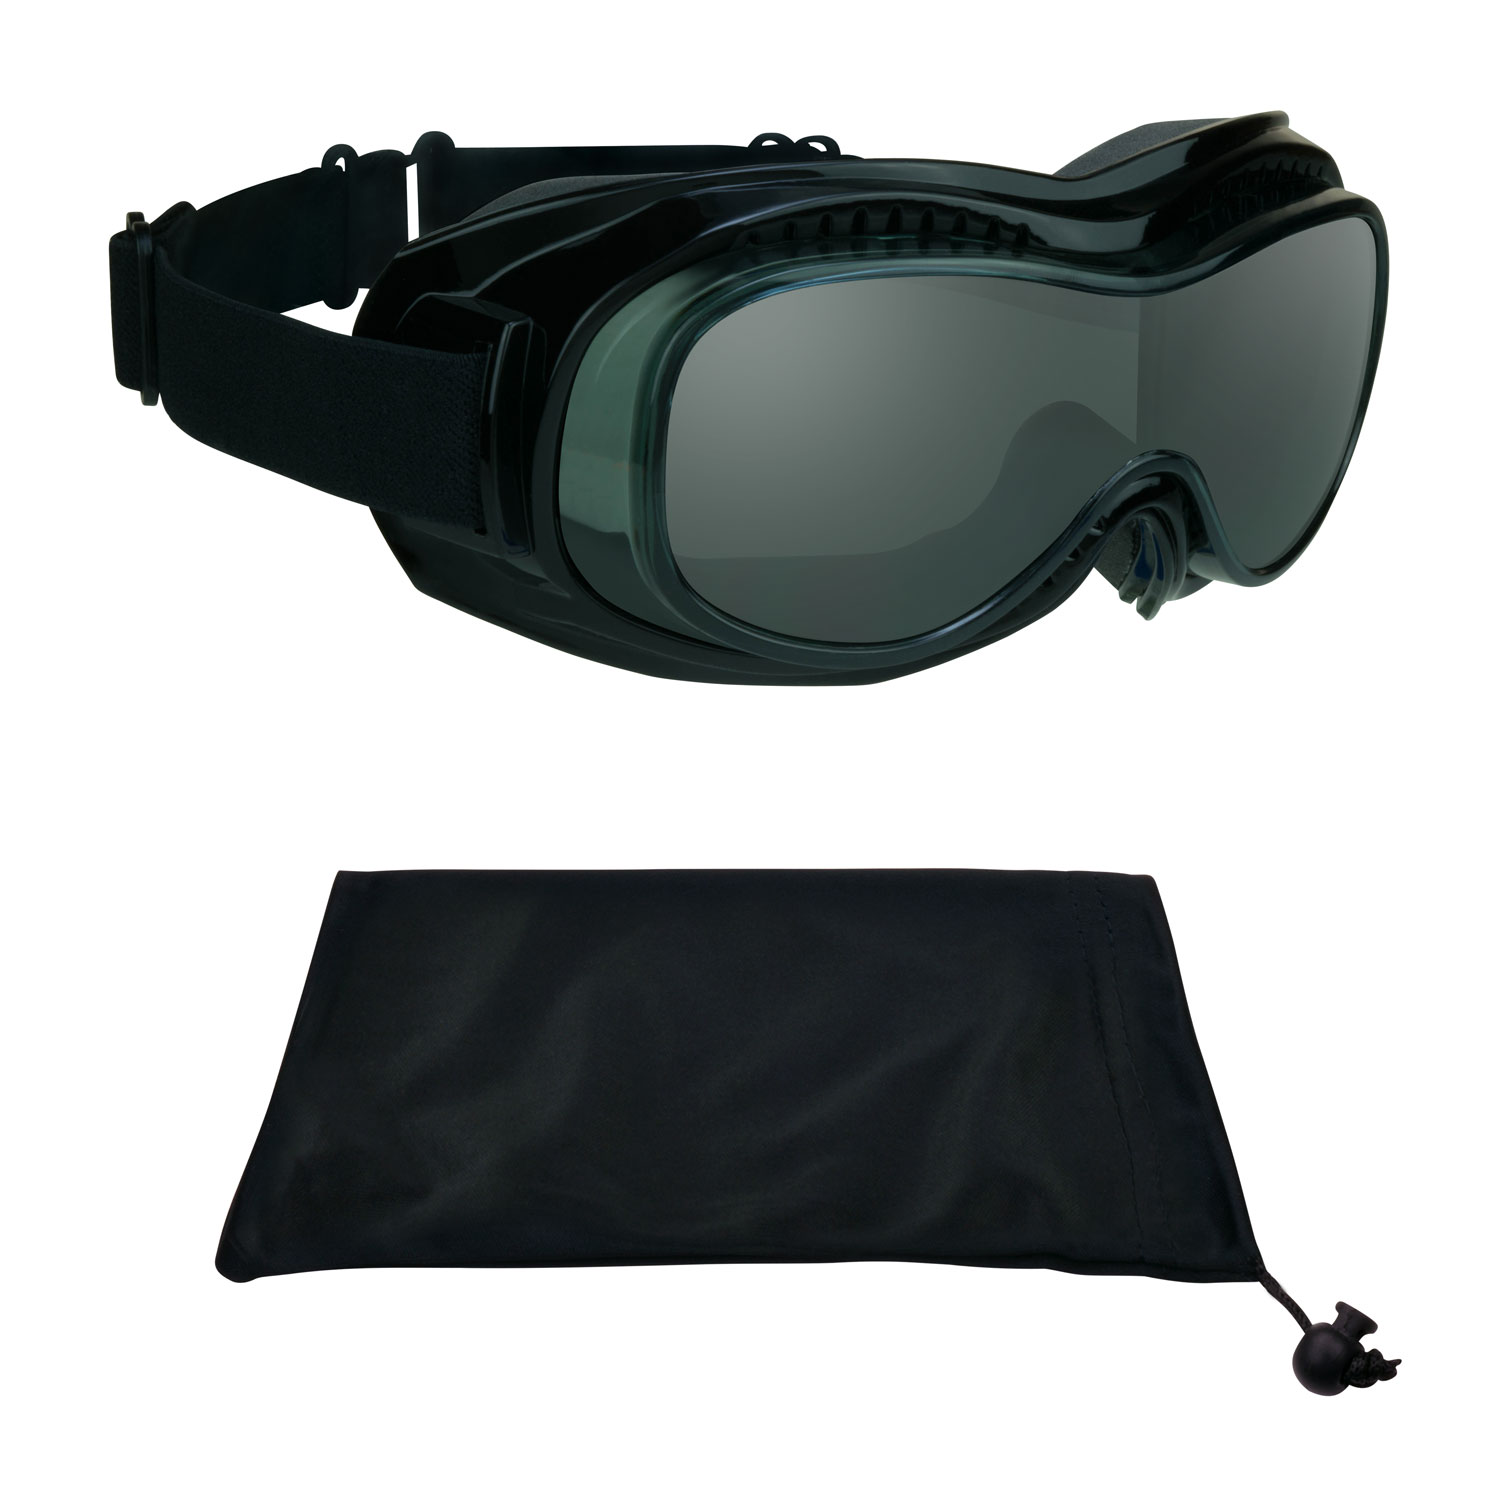 Fit Over RX Glasses Goggles to Cover Prescription for Motorcycle Riding, Skiing, Snowboard, Cycling and more!